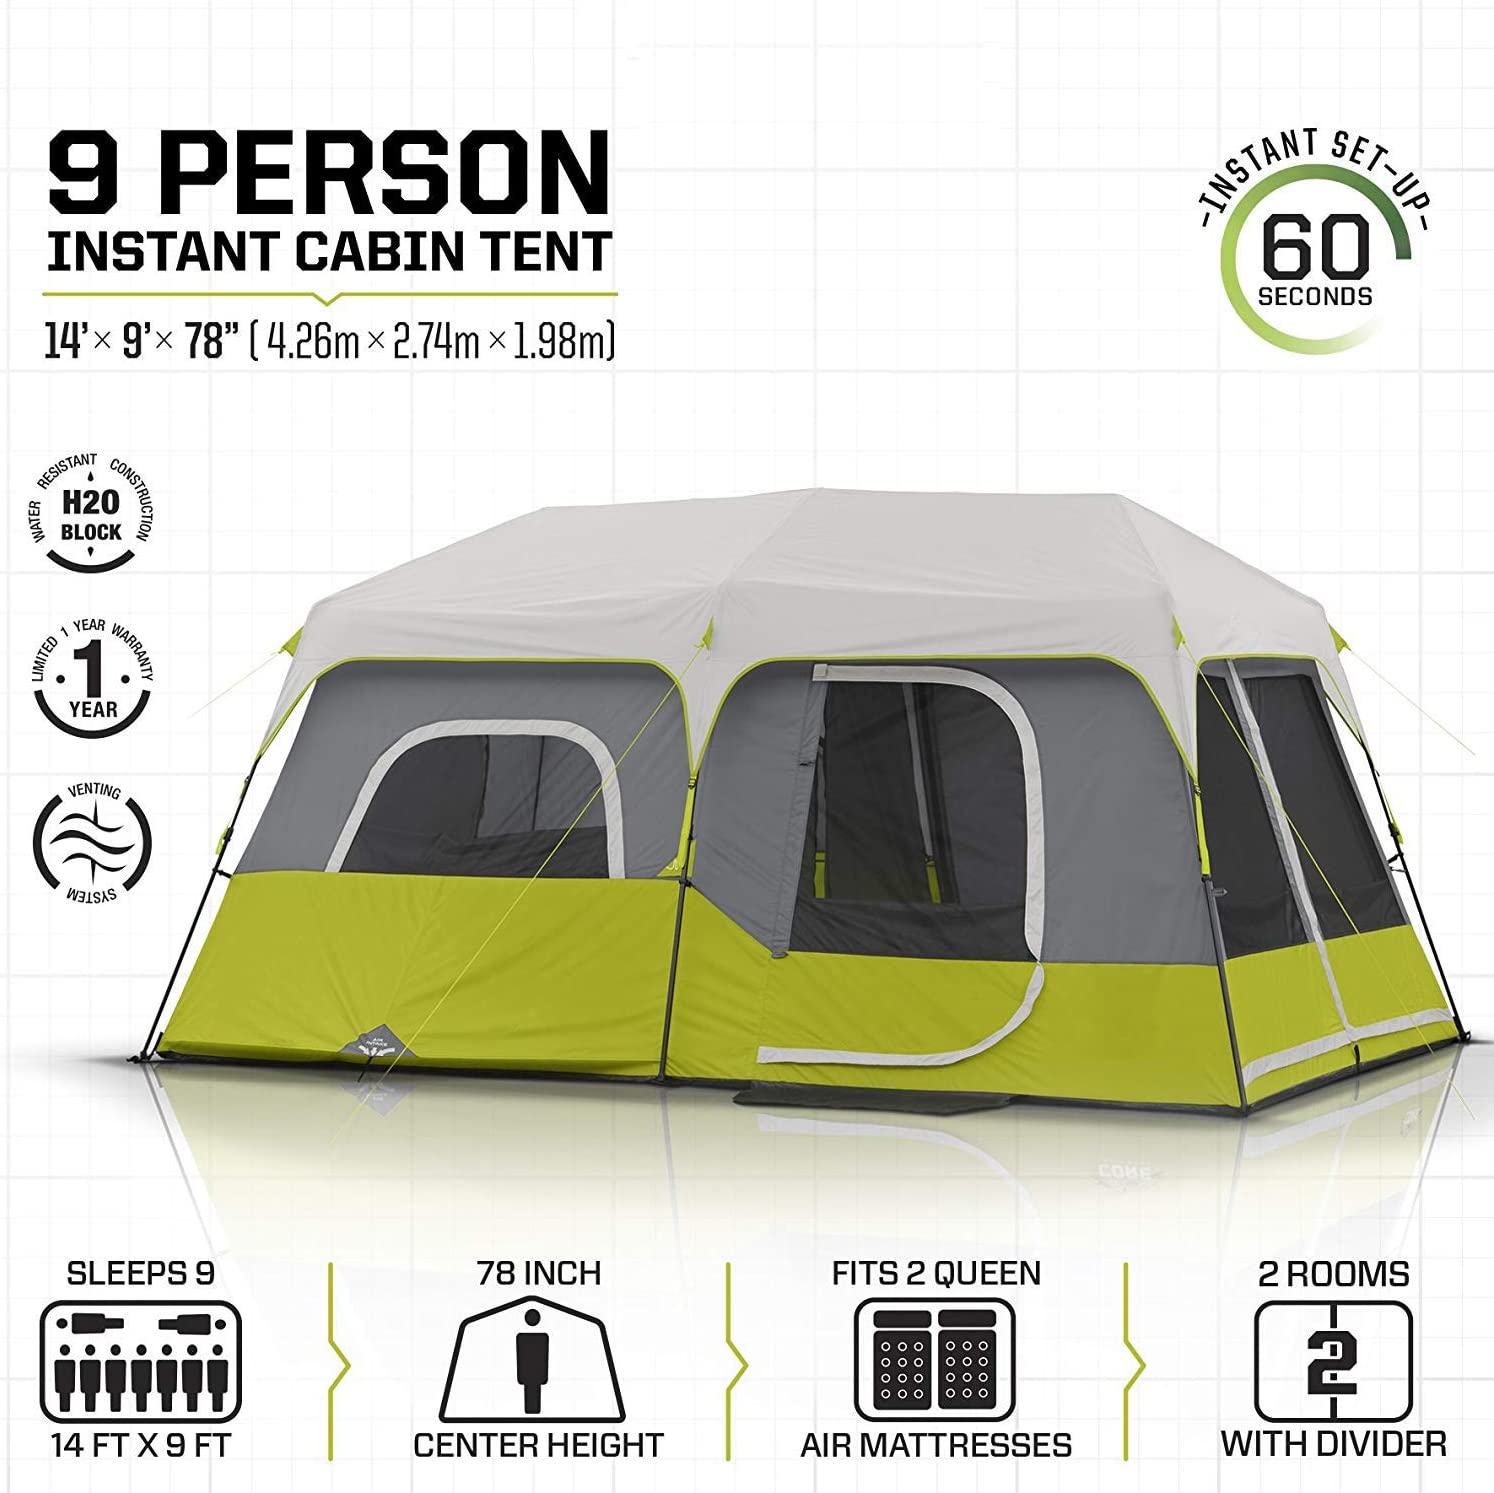 LS2 9 12 Persons Instant Cabin Tent